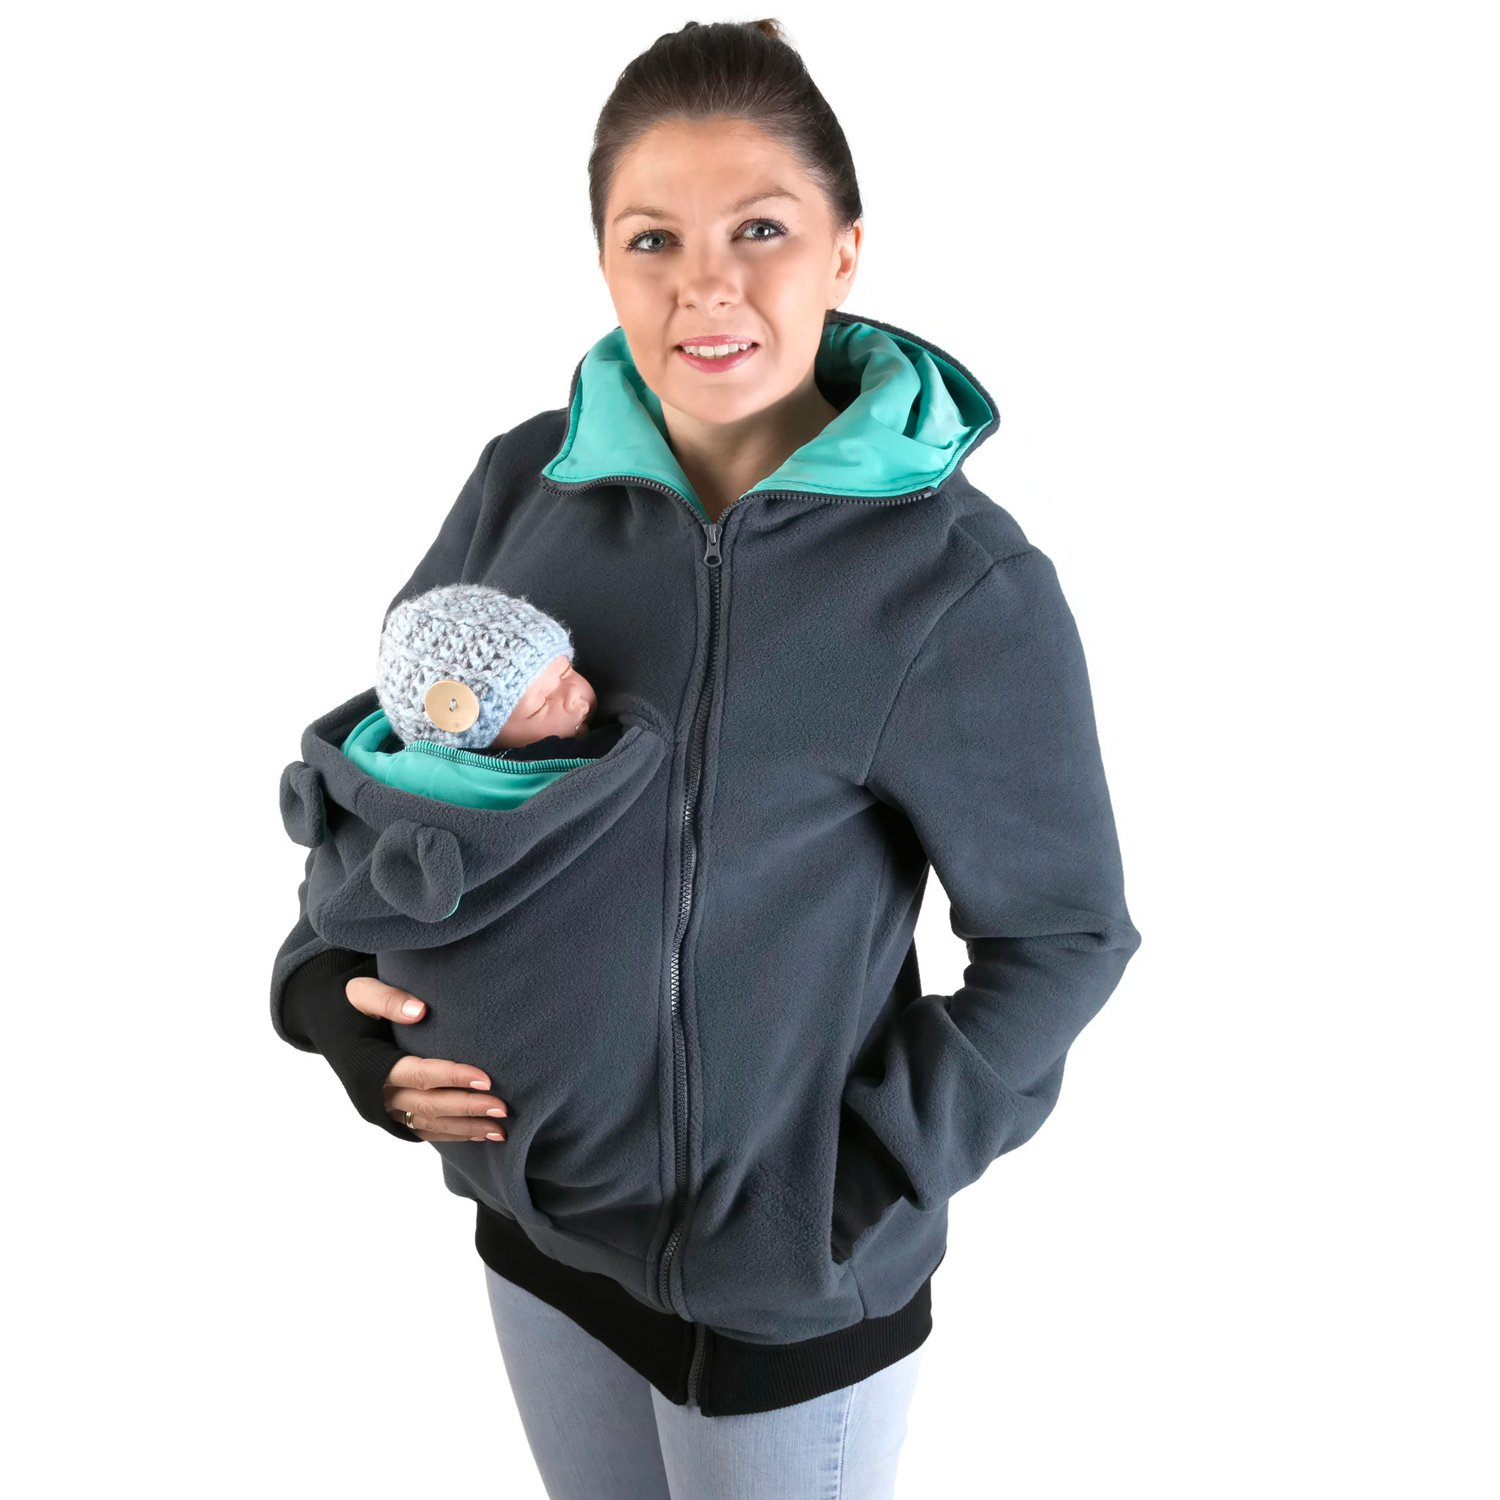 FUN2BEMUM Babywearing Warm Polar Fleece, Hoodie/Pullover for Two/for Baby Carriers Graphite/Teal (XXL - US14)